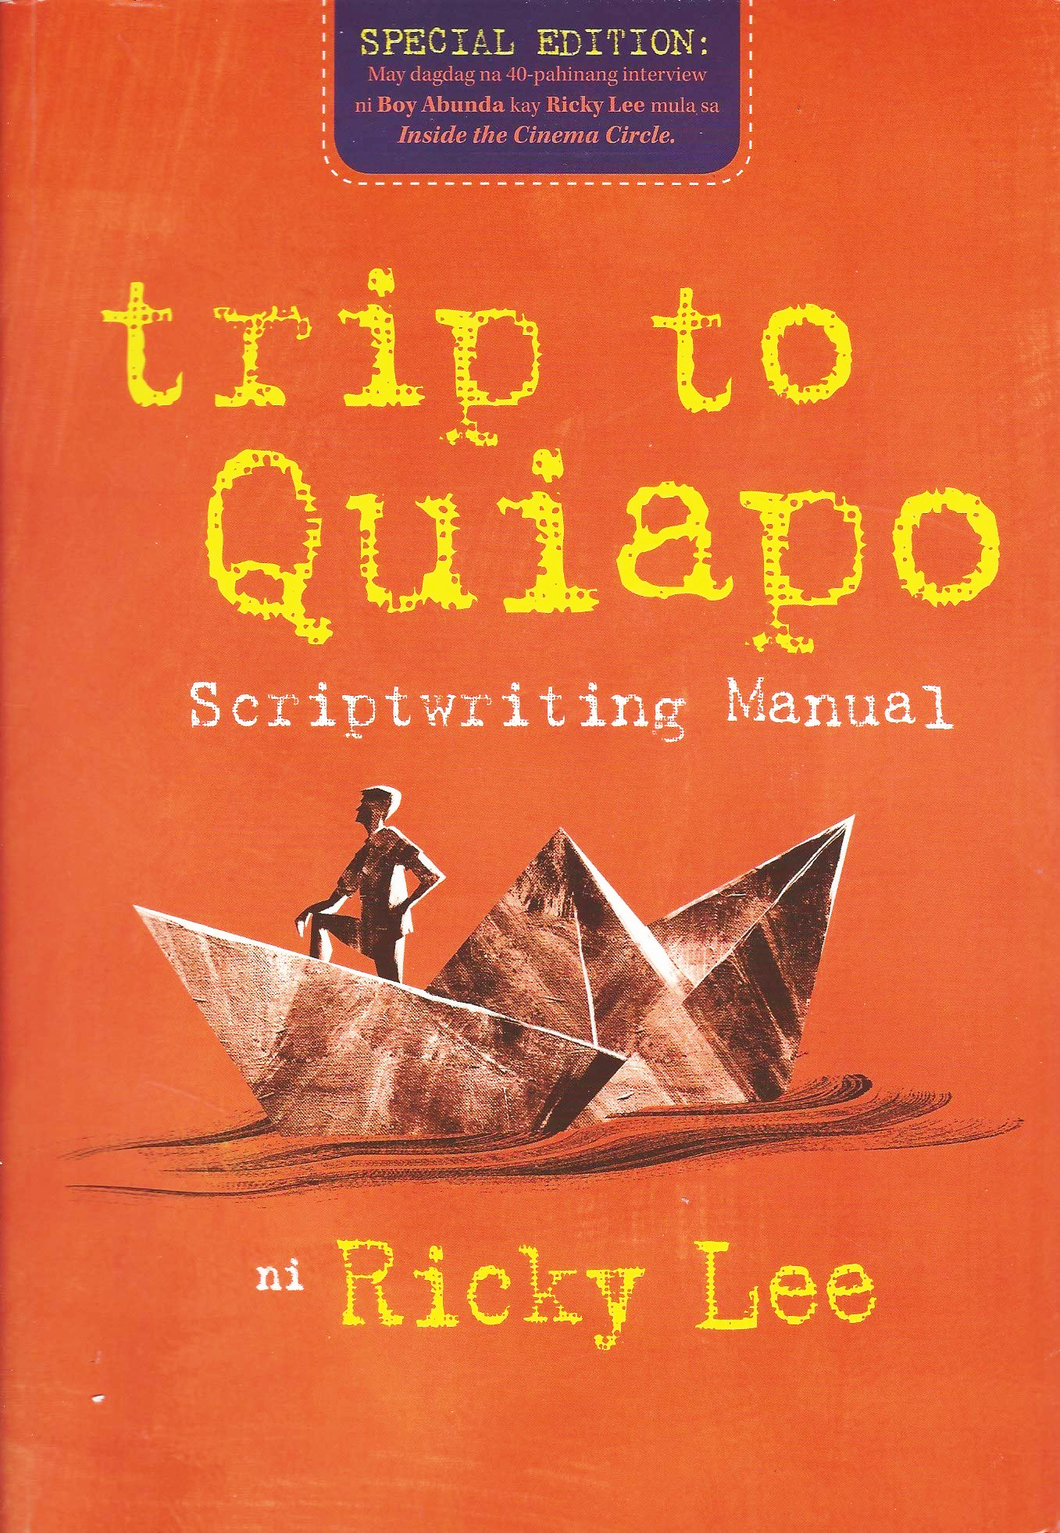 Trip To Quiapo Scriptwriting Manual Special Edition by Ricky Lee available here at Avenida